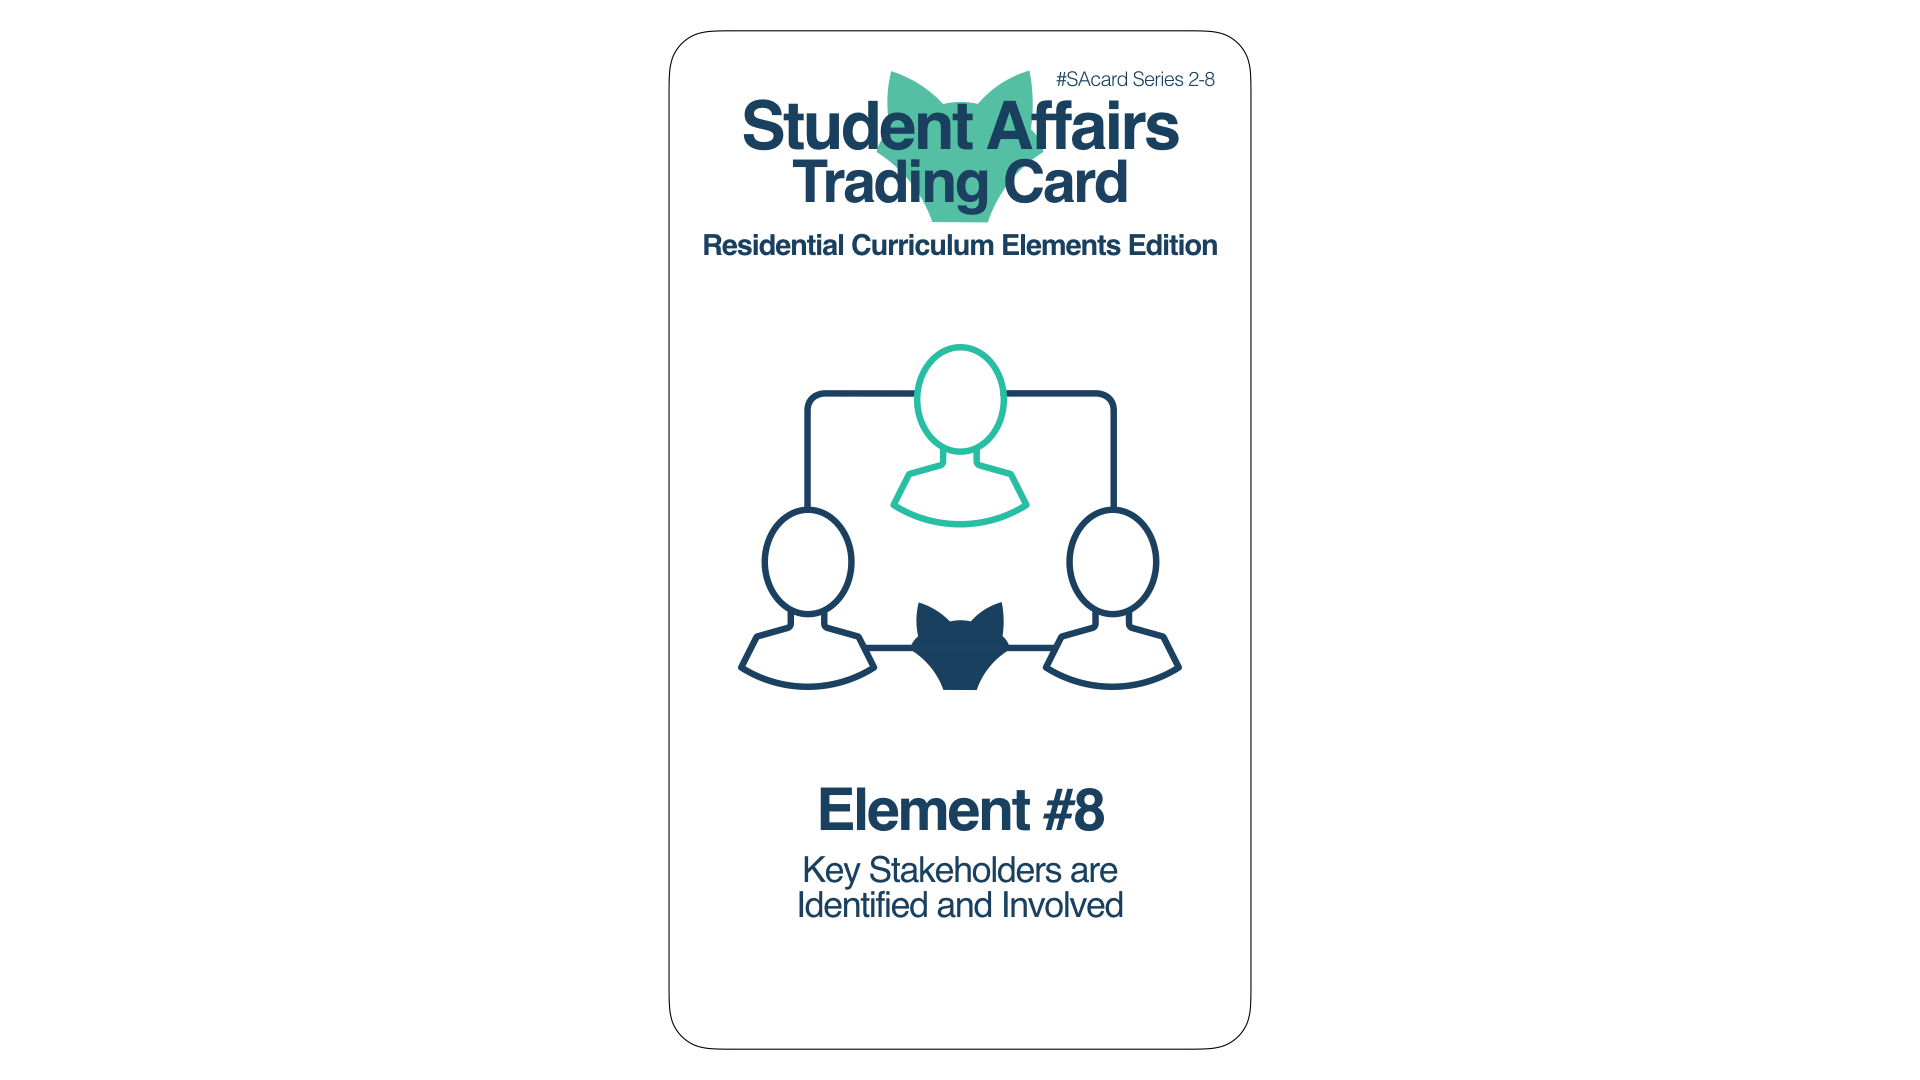 Student Affairs Trading Card 2-8: Residential Curriculum Element 8